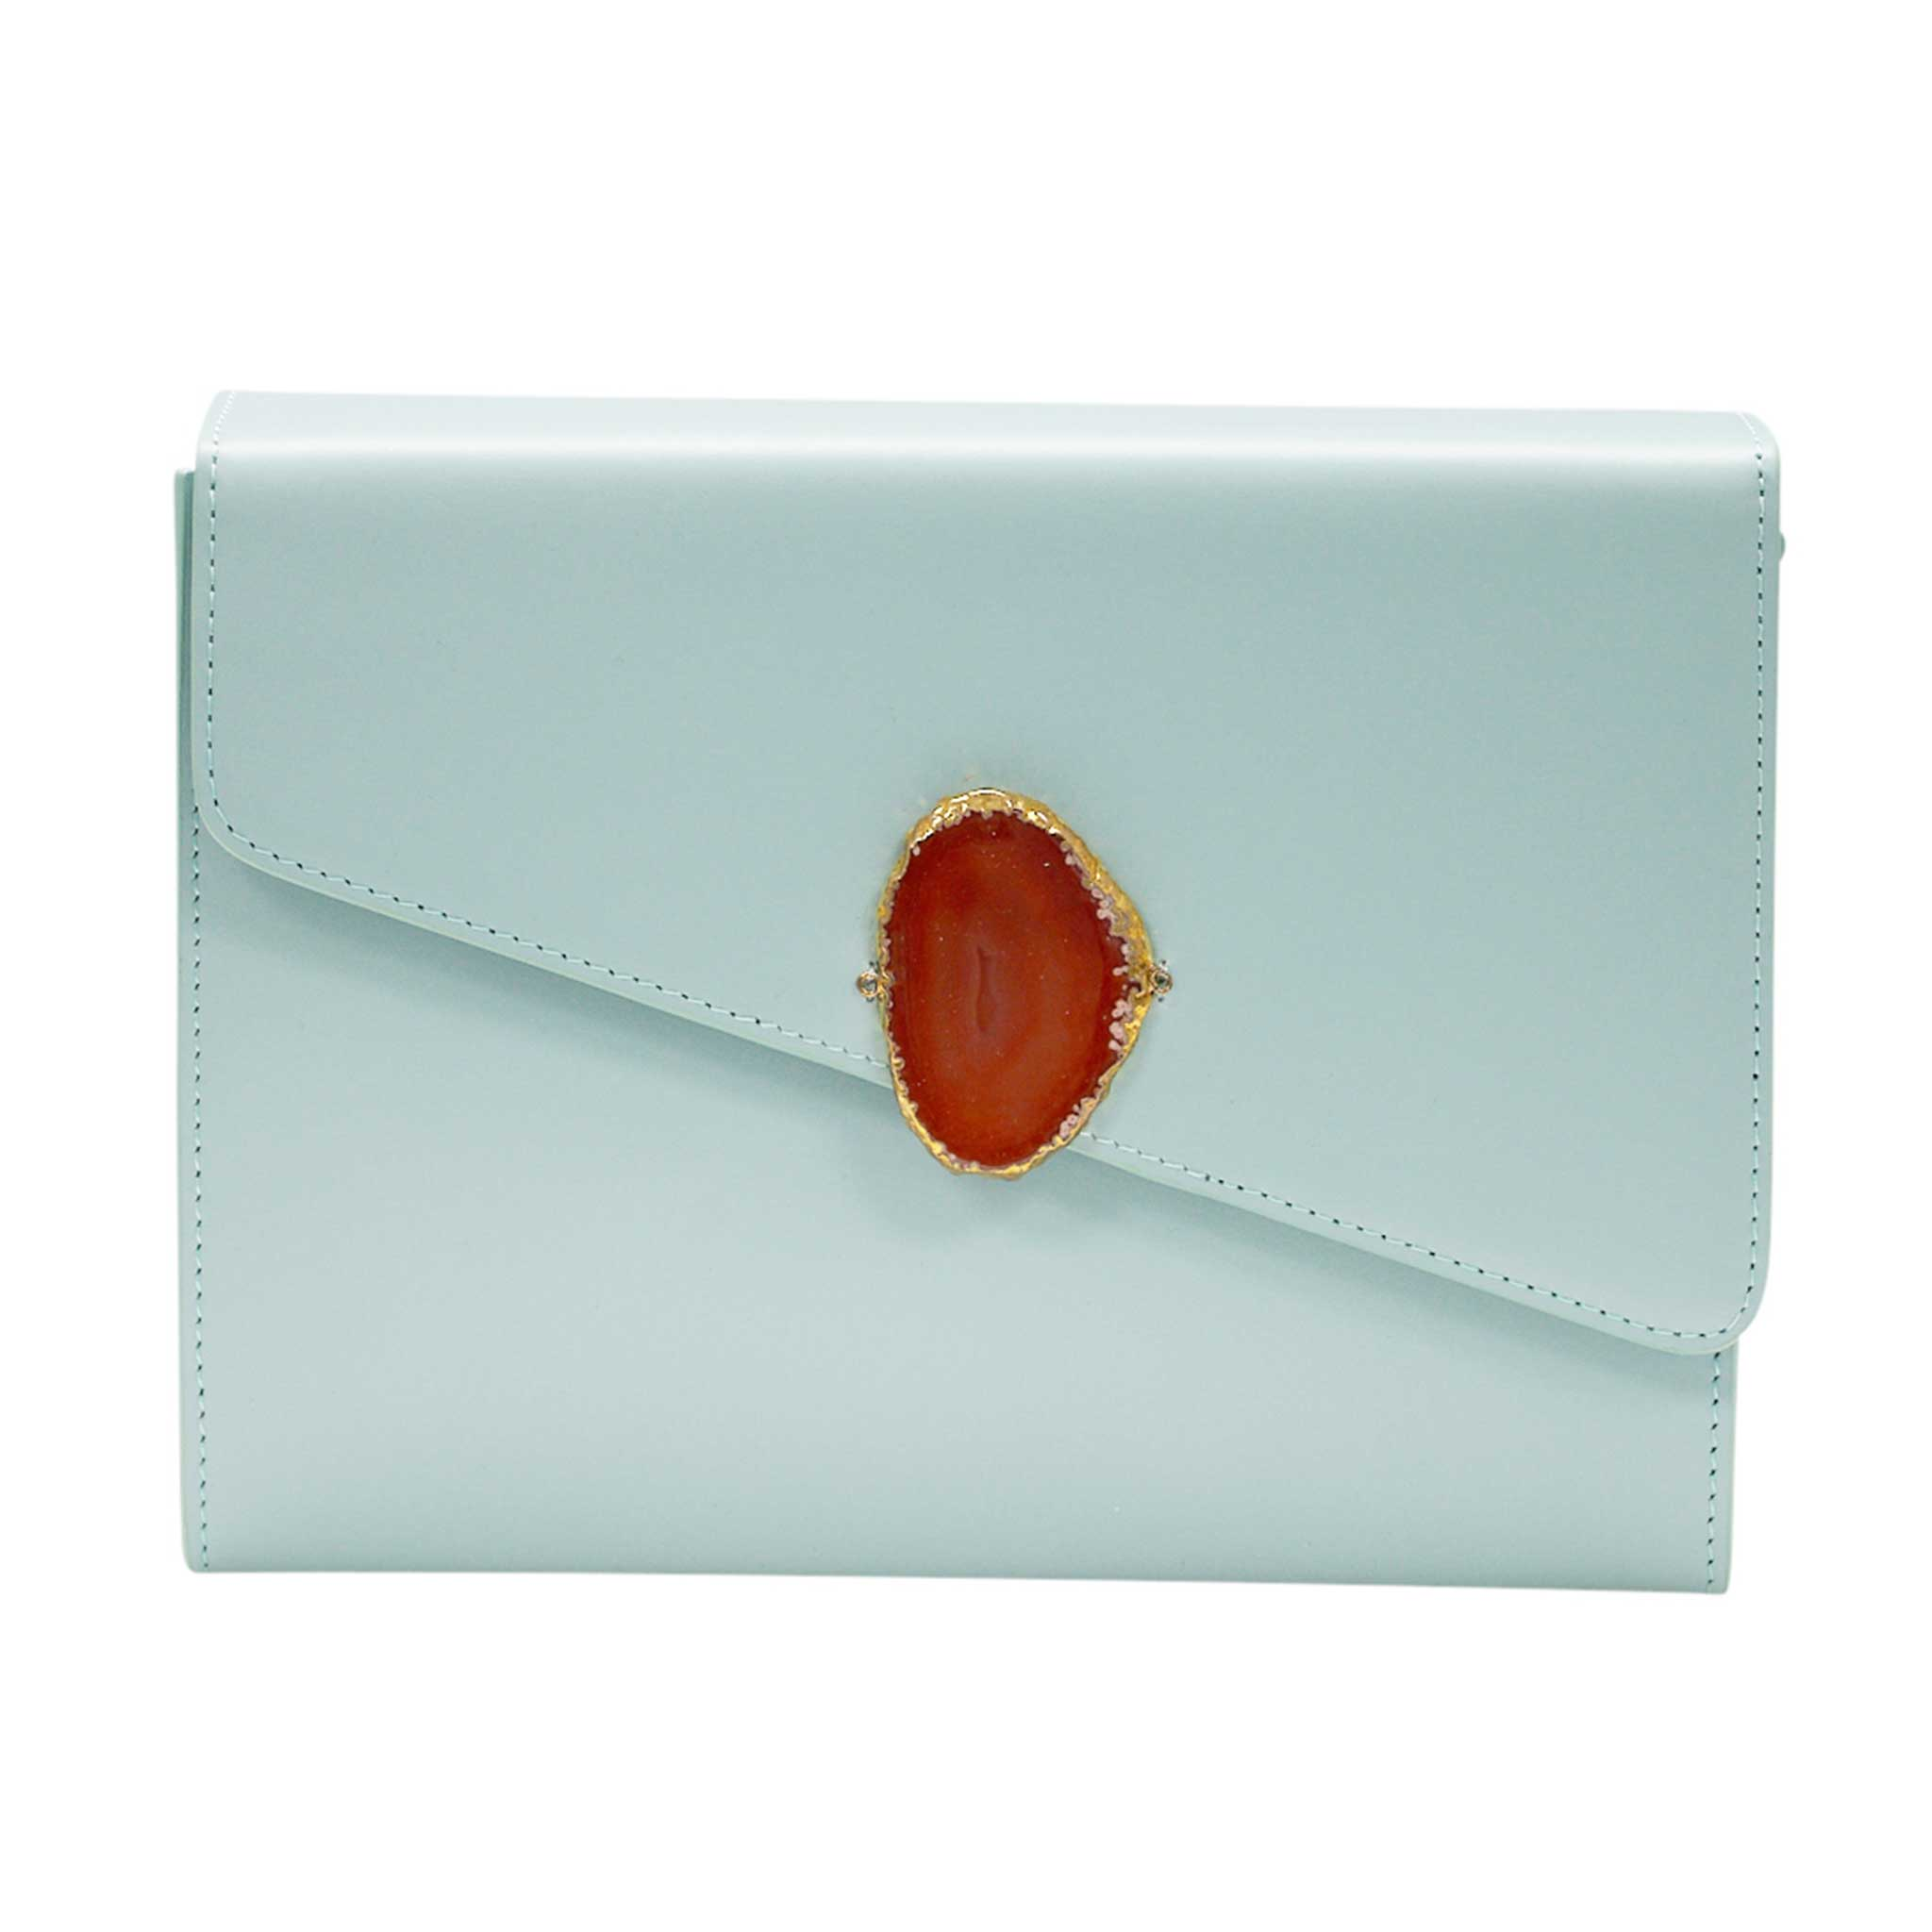 LOVED BAG - MOONSTONE WHITE LEATHER WITH BROWN AGATE - 1.02.001.004